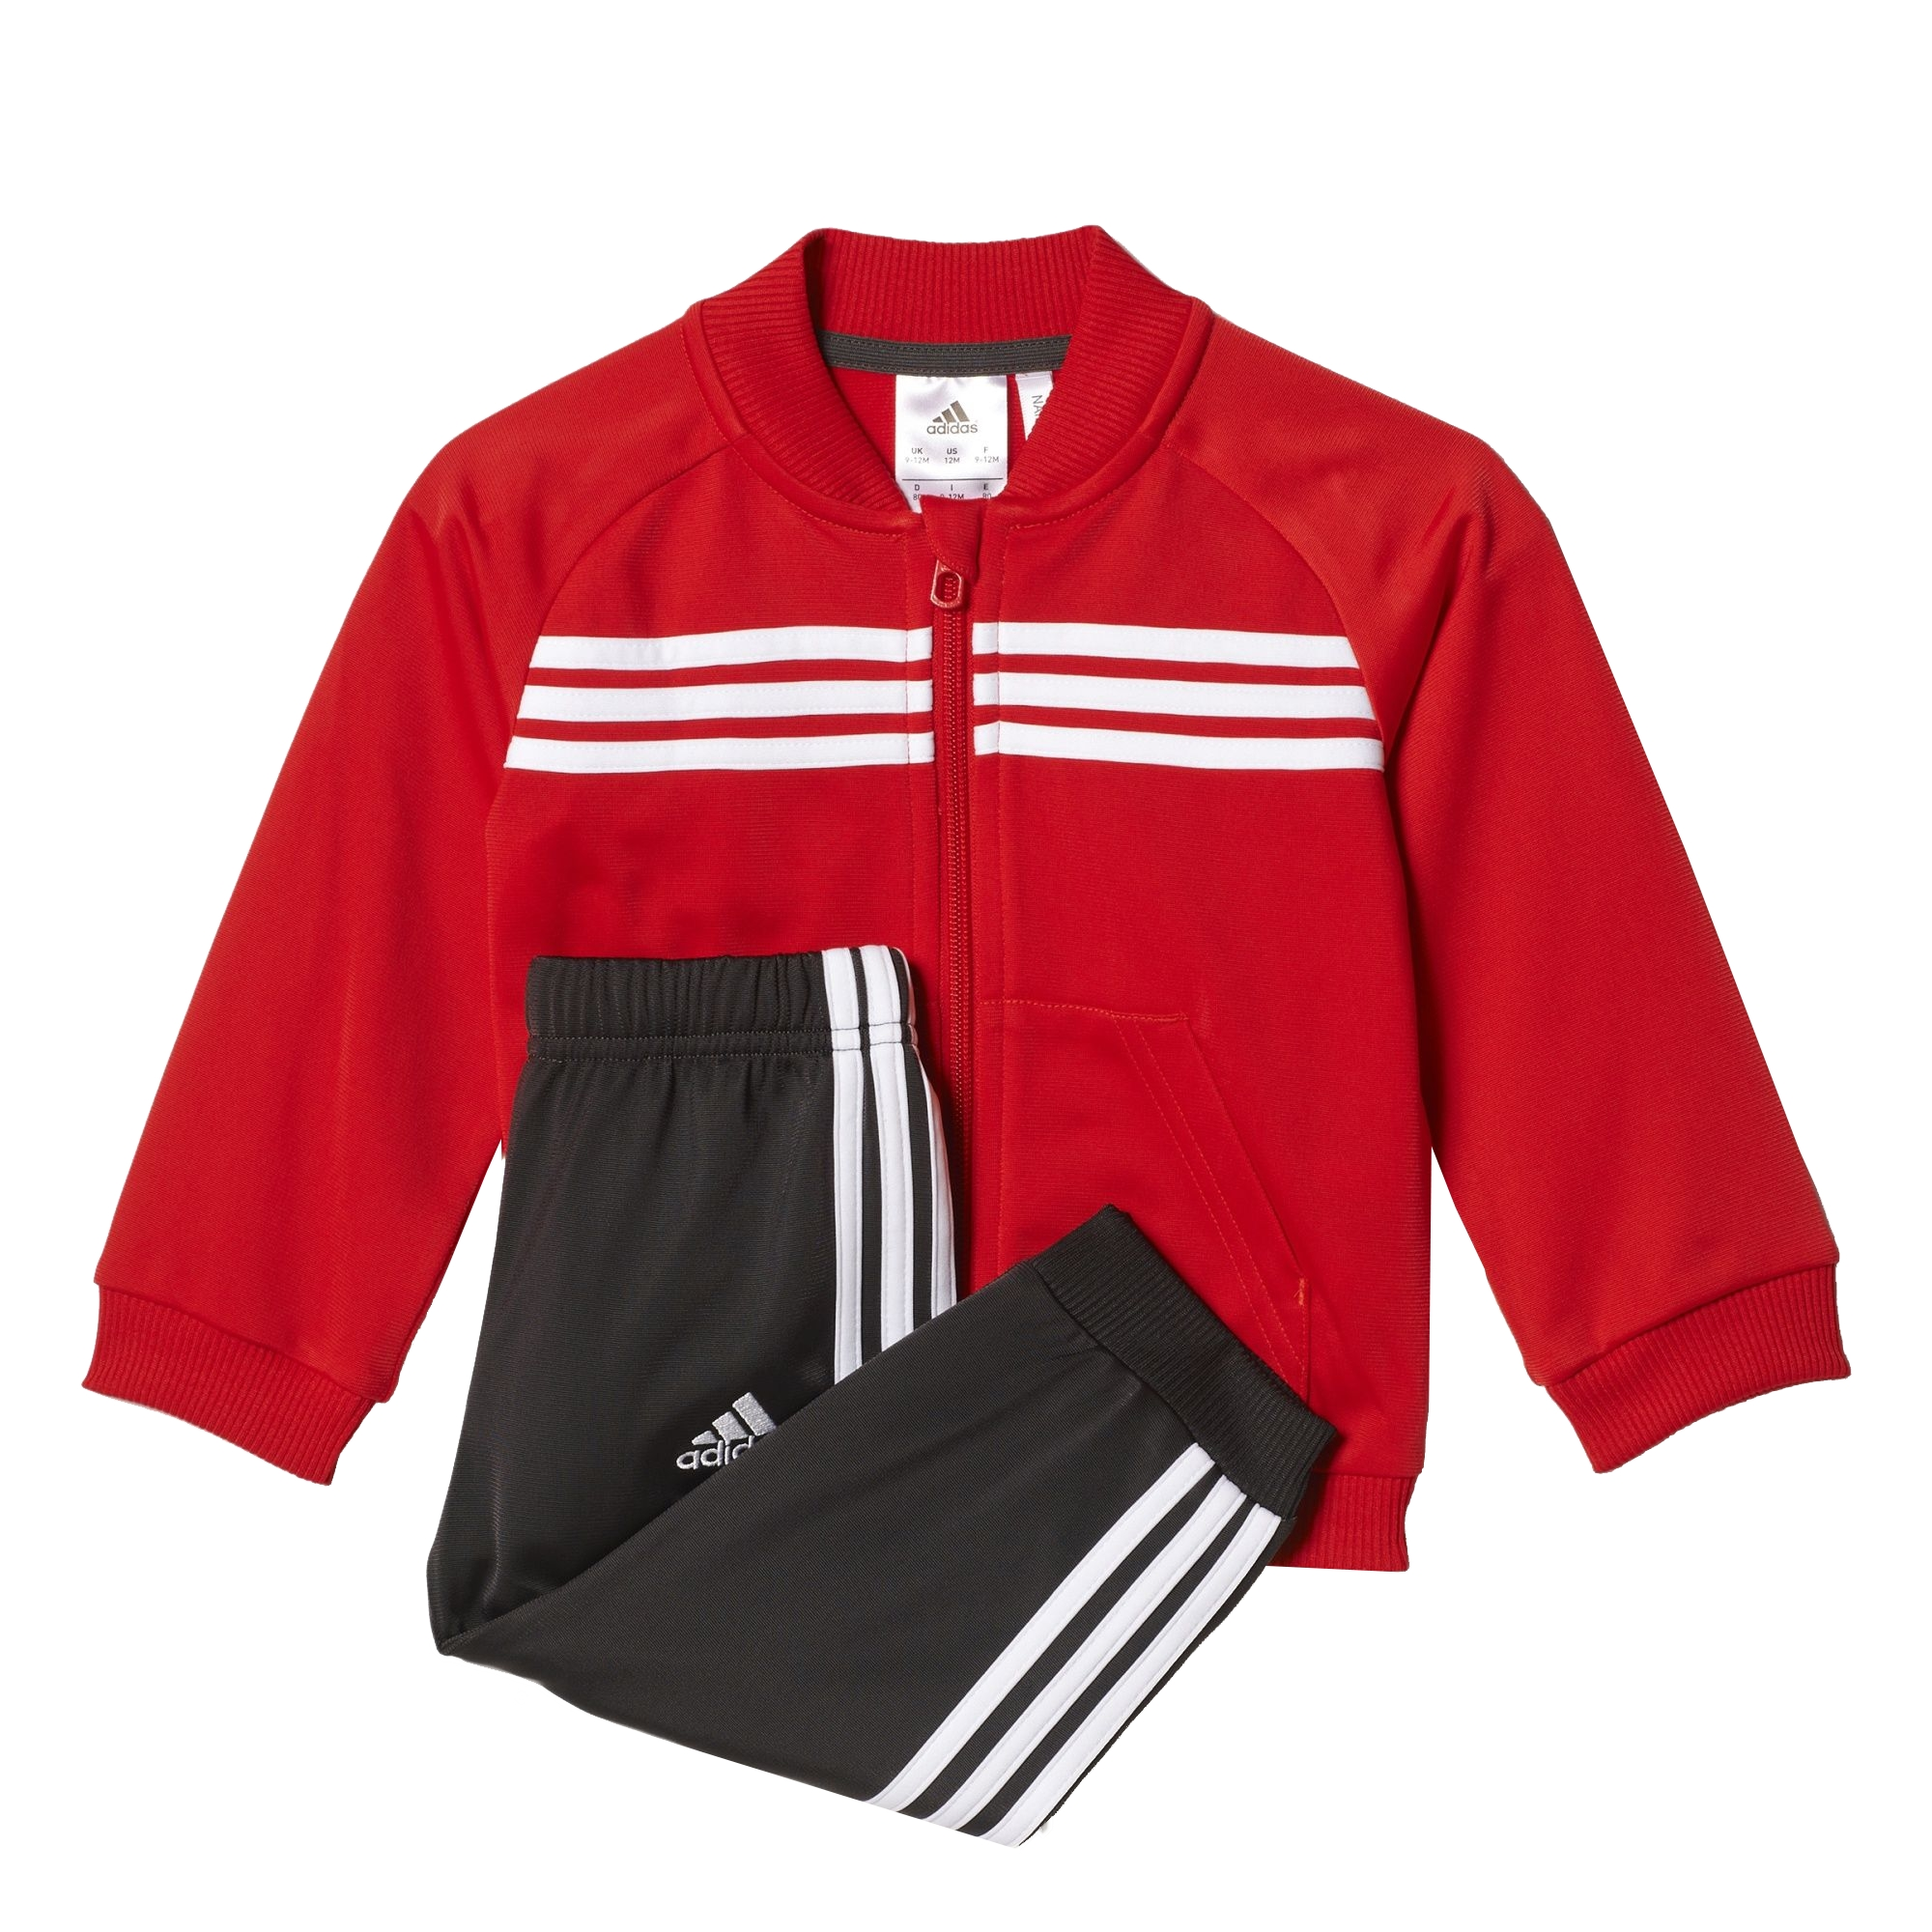 adidas camp death essay from magazine might other shiny tracksuits Click to read more about shiny adidas tracksuits and the death of camp and other essays from might magazine by might magazine editors librarything is a cataloging and social networking site for booklovers.